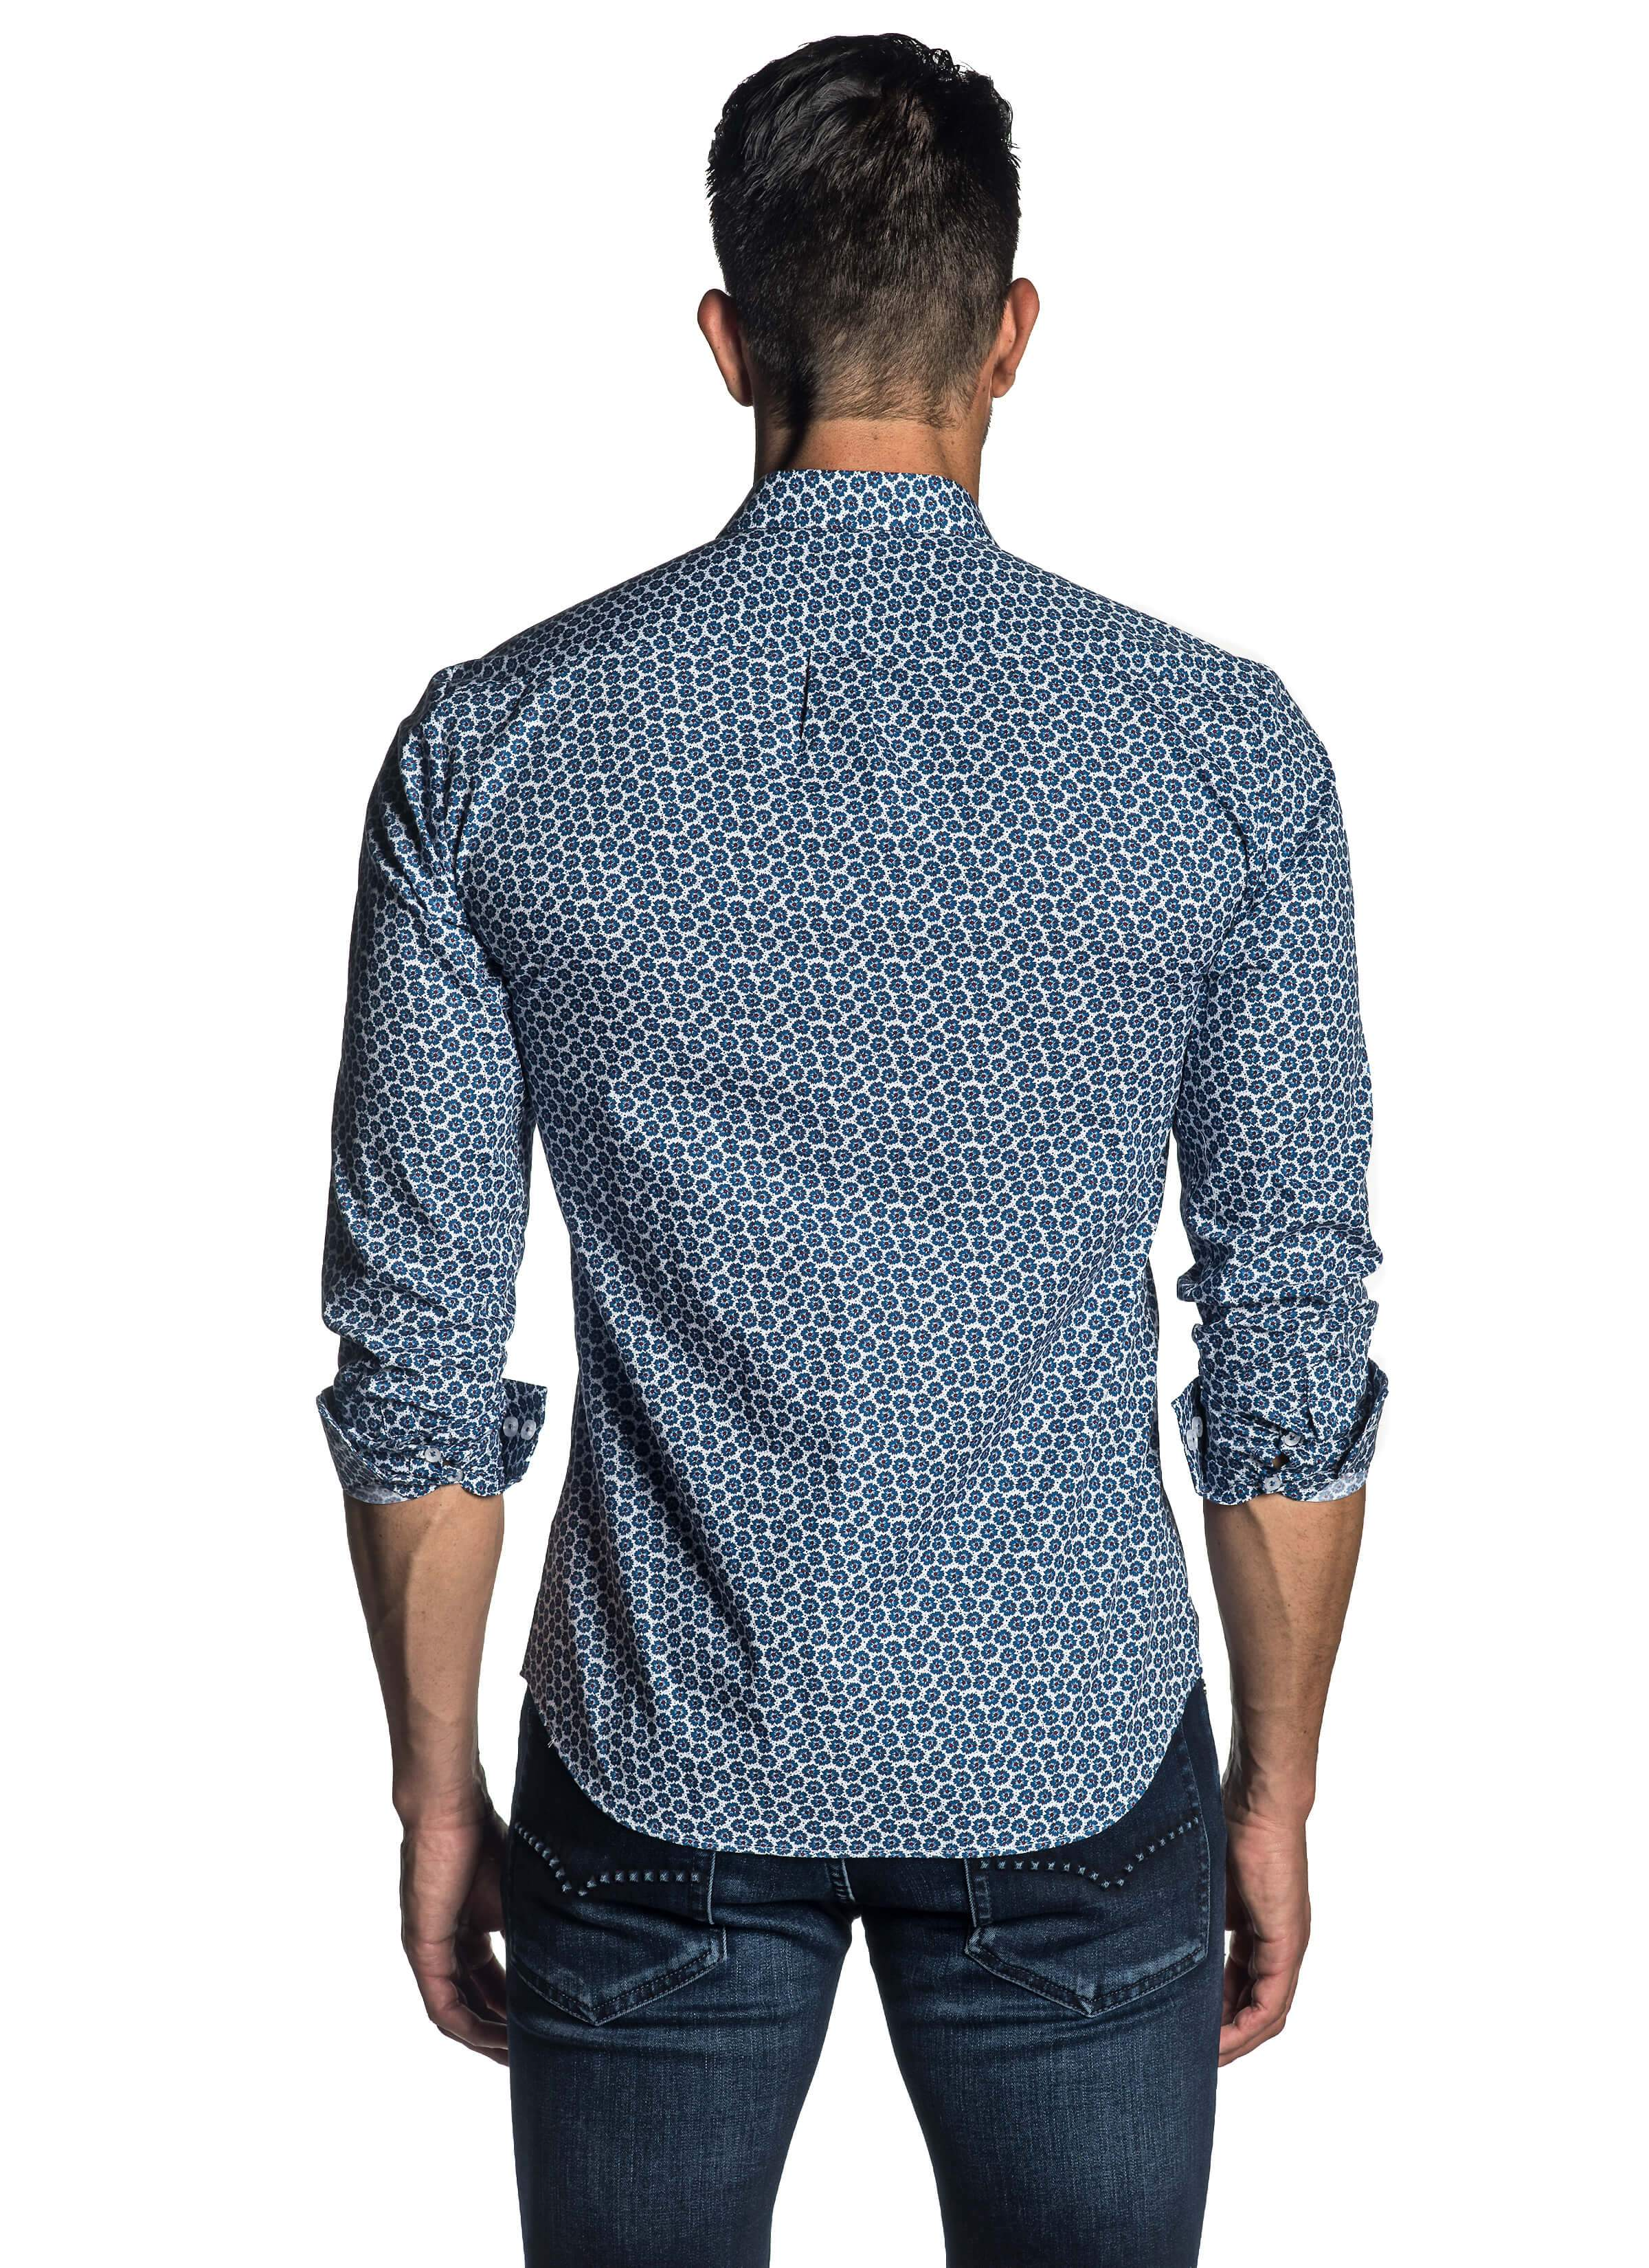 White and Blue Floral Shirt for Men - back AH-T-7053 - Jared Lang